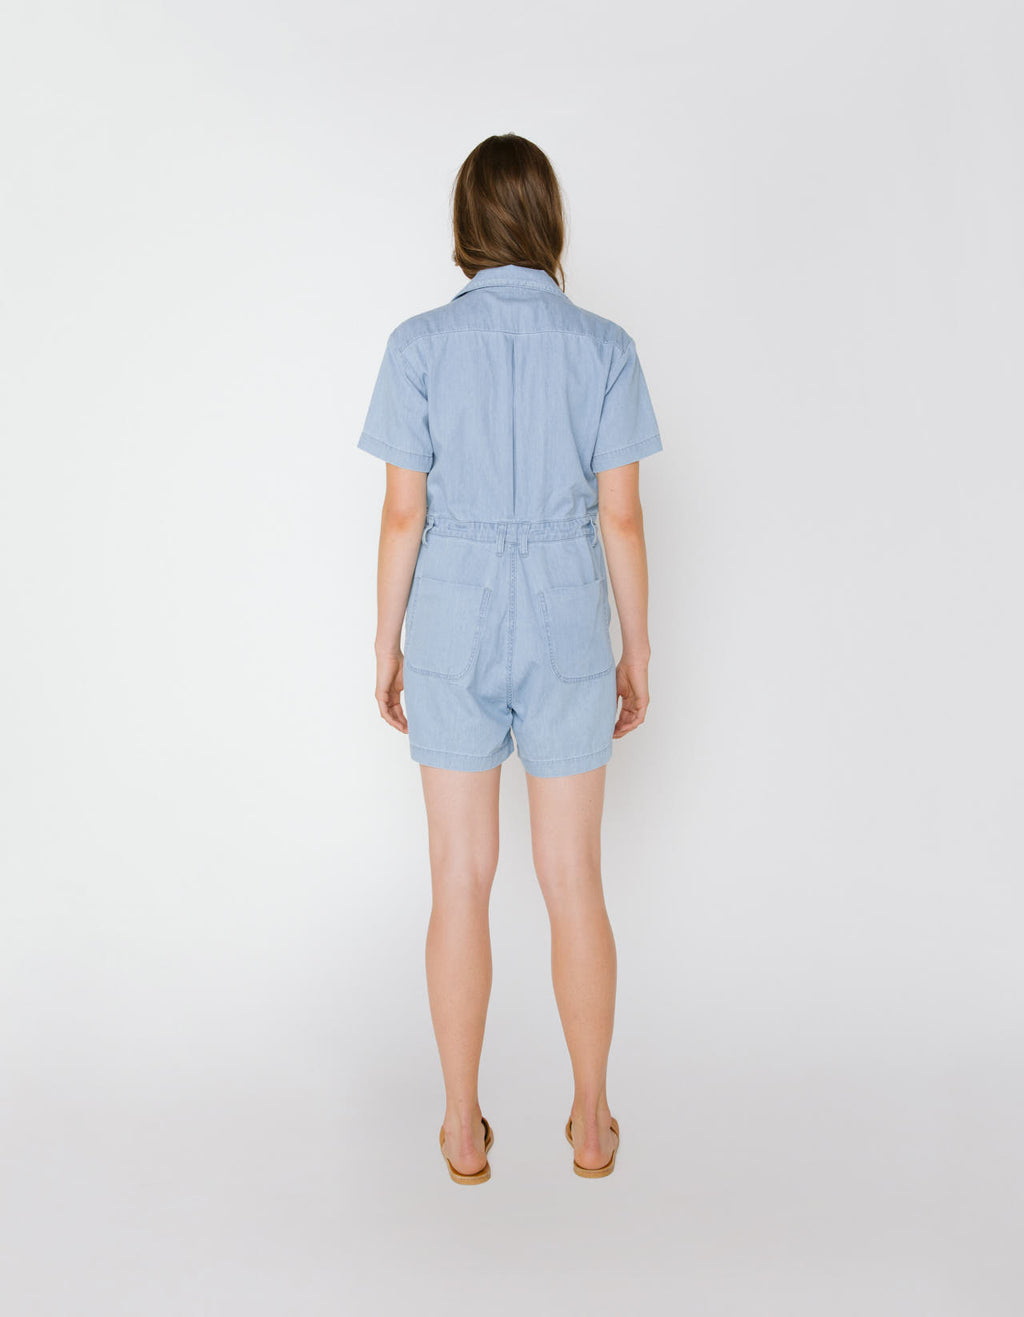 The Aurora Romper in Light Indigo